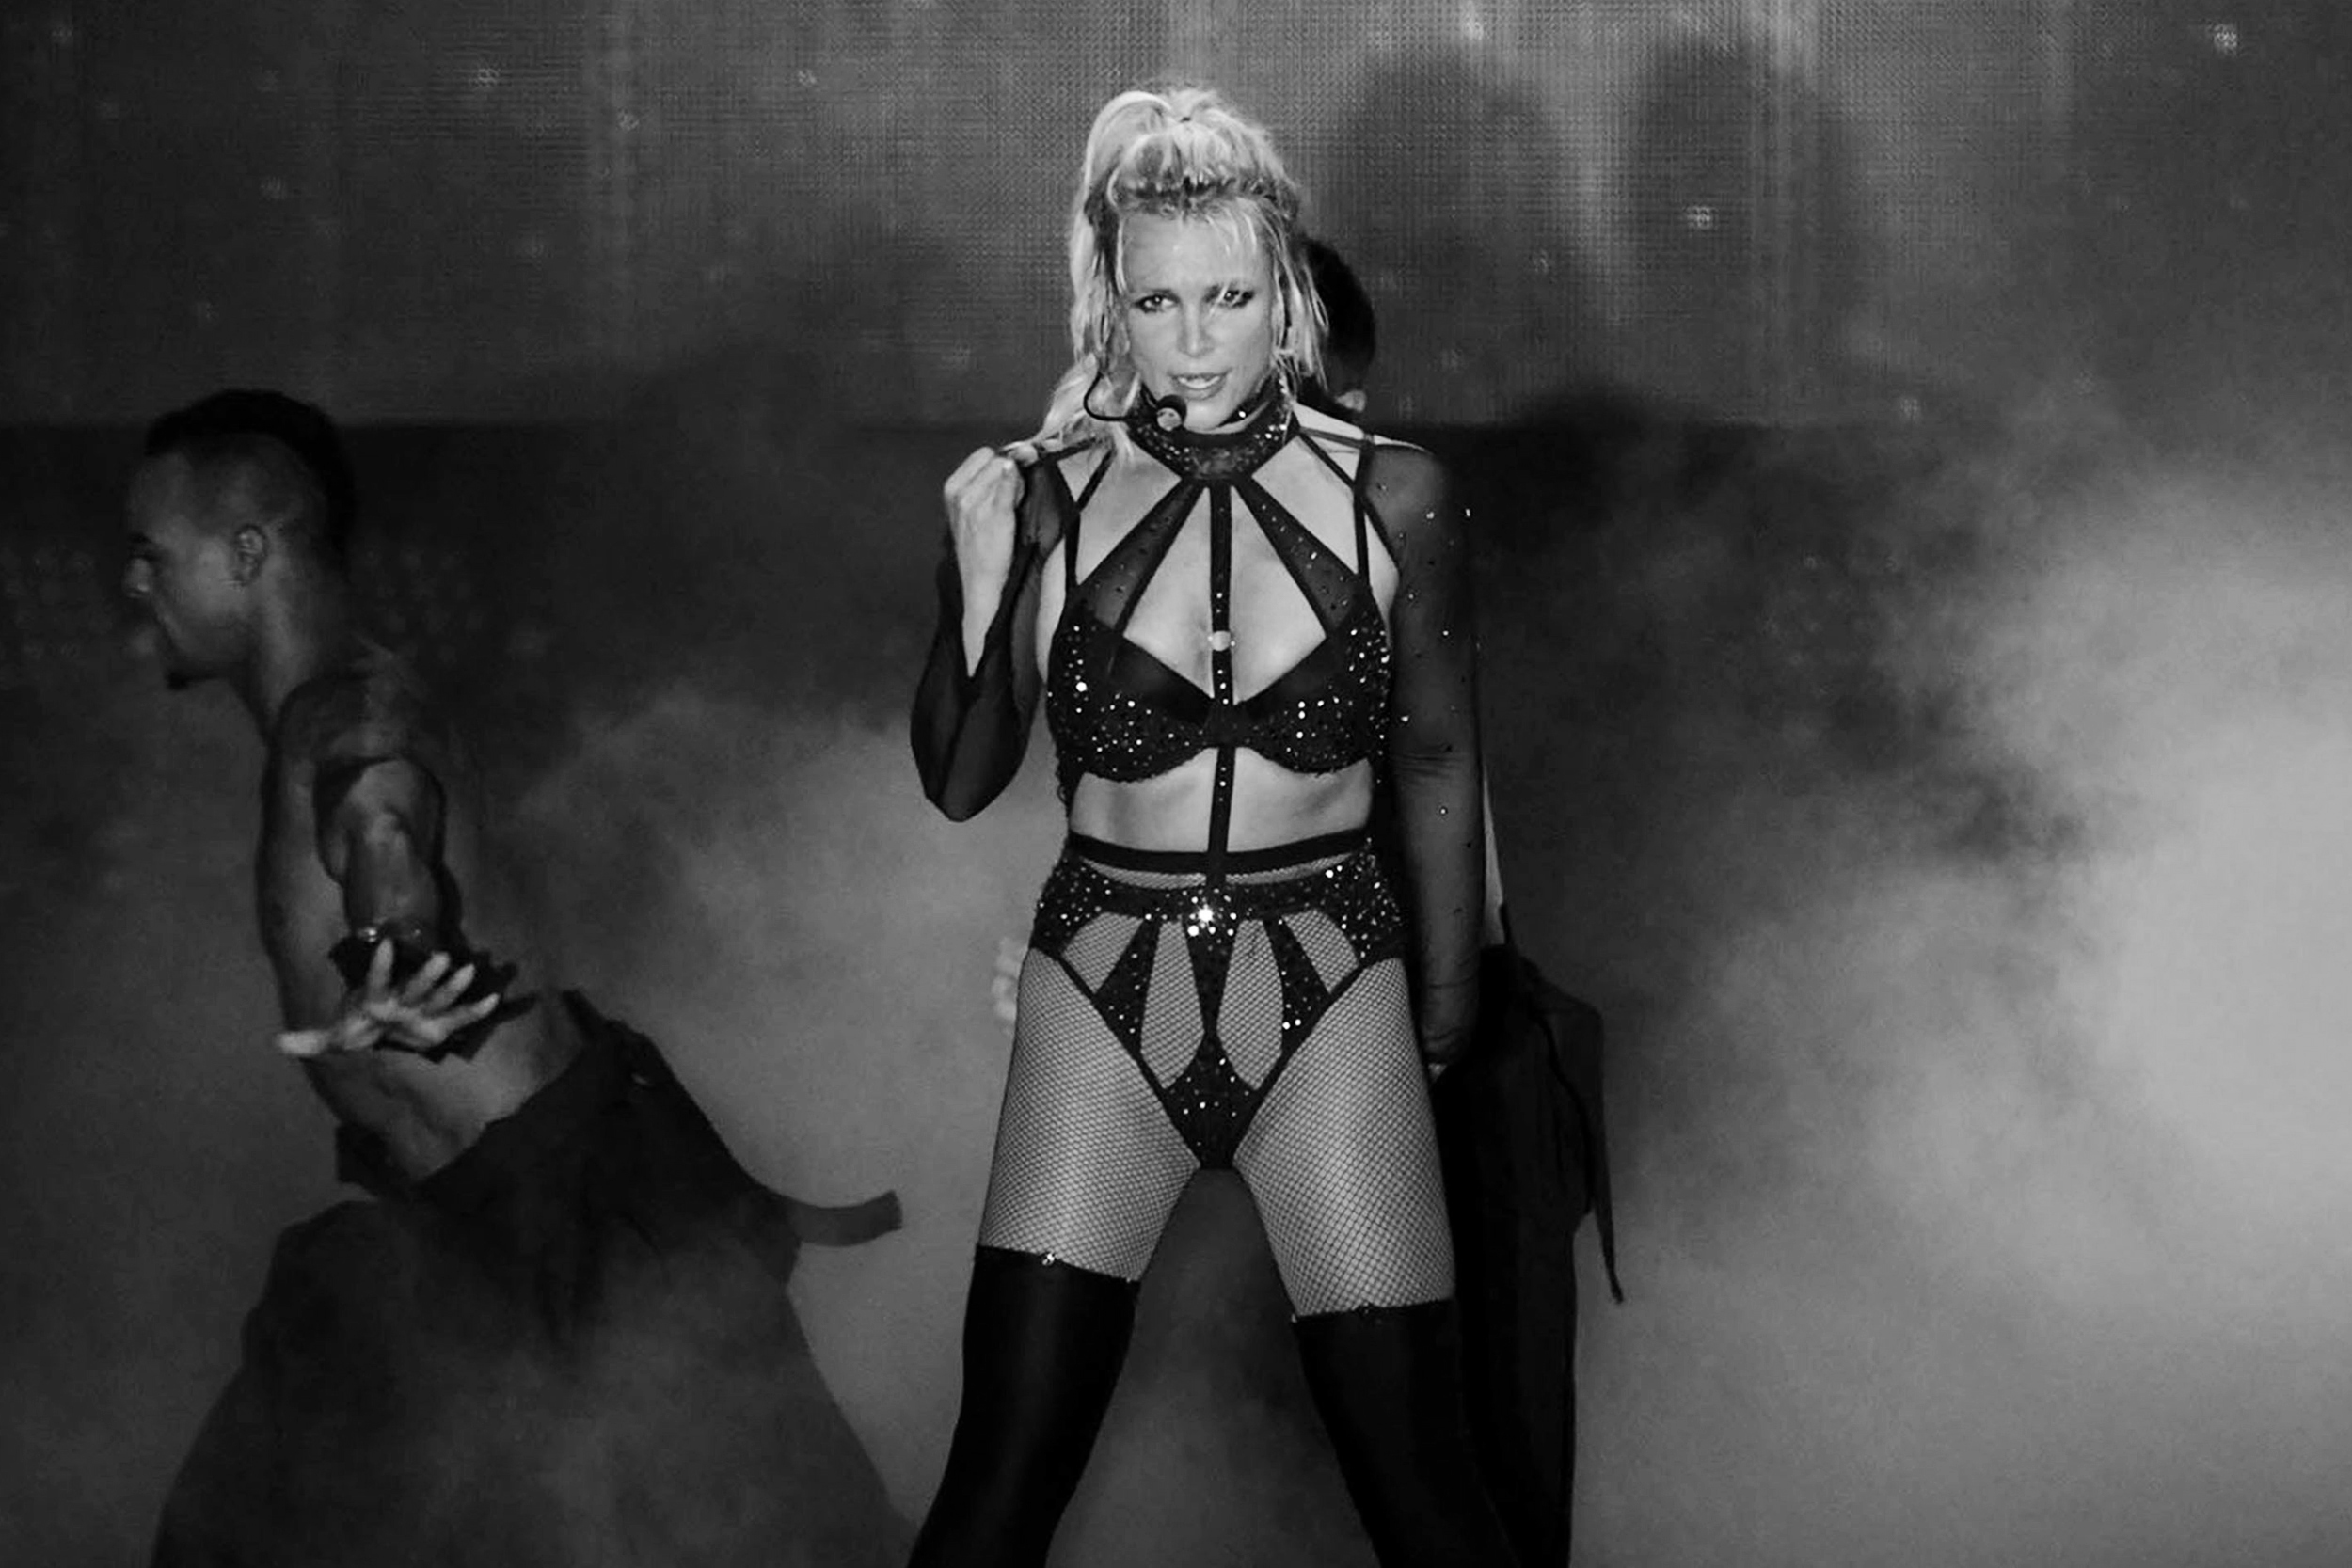 Britney Spears' father was suspended as a conservator. What's next?